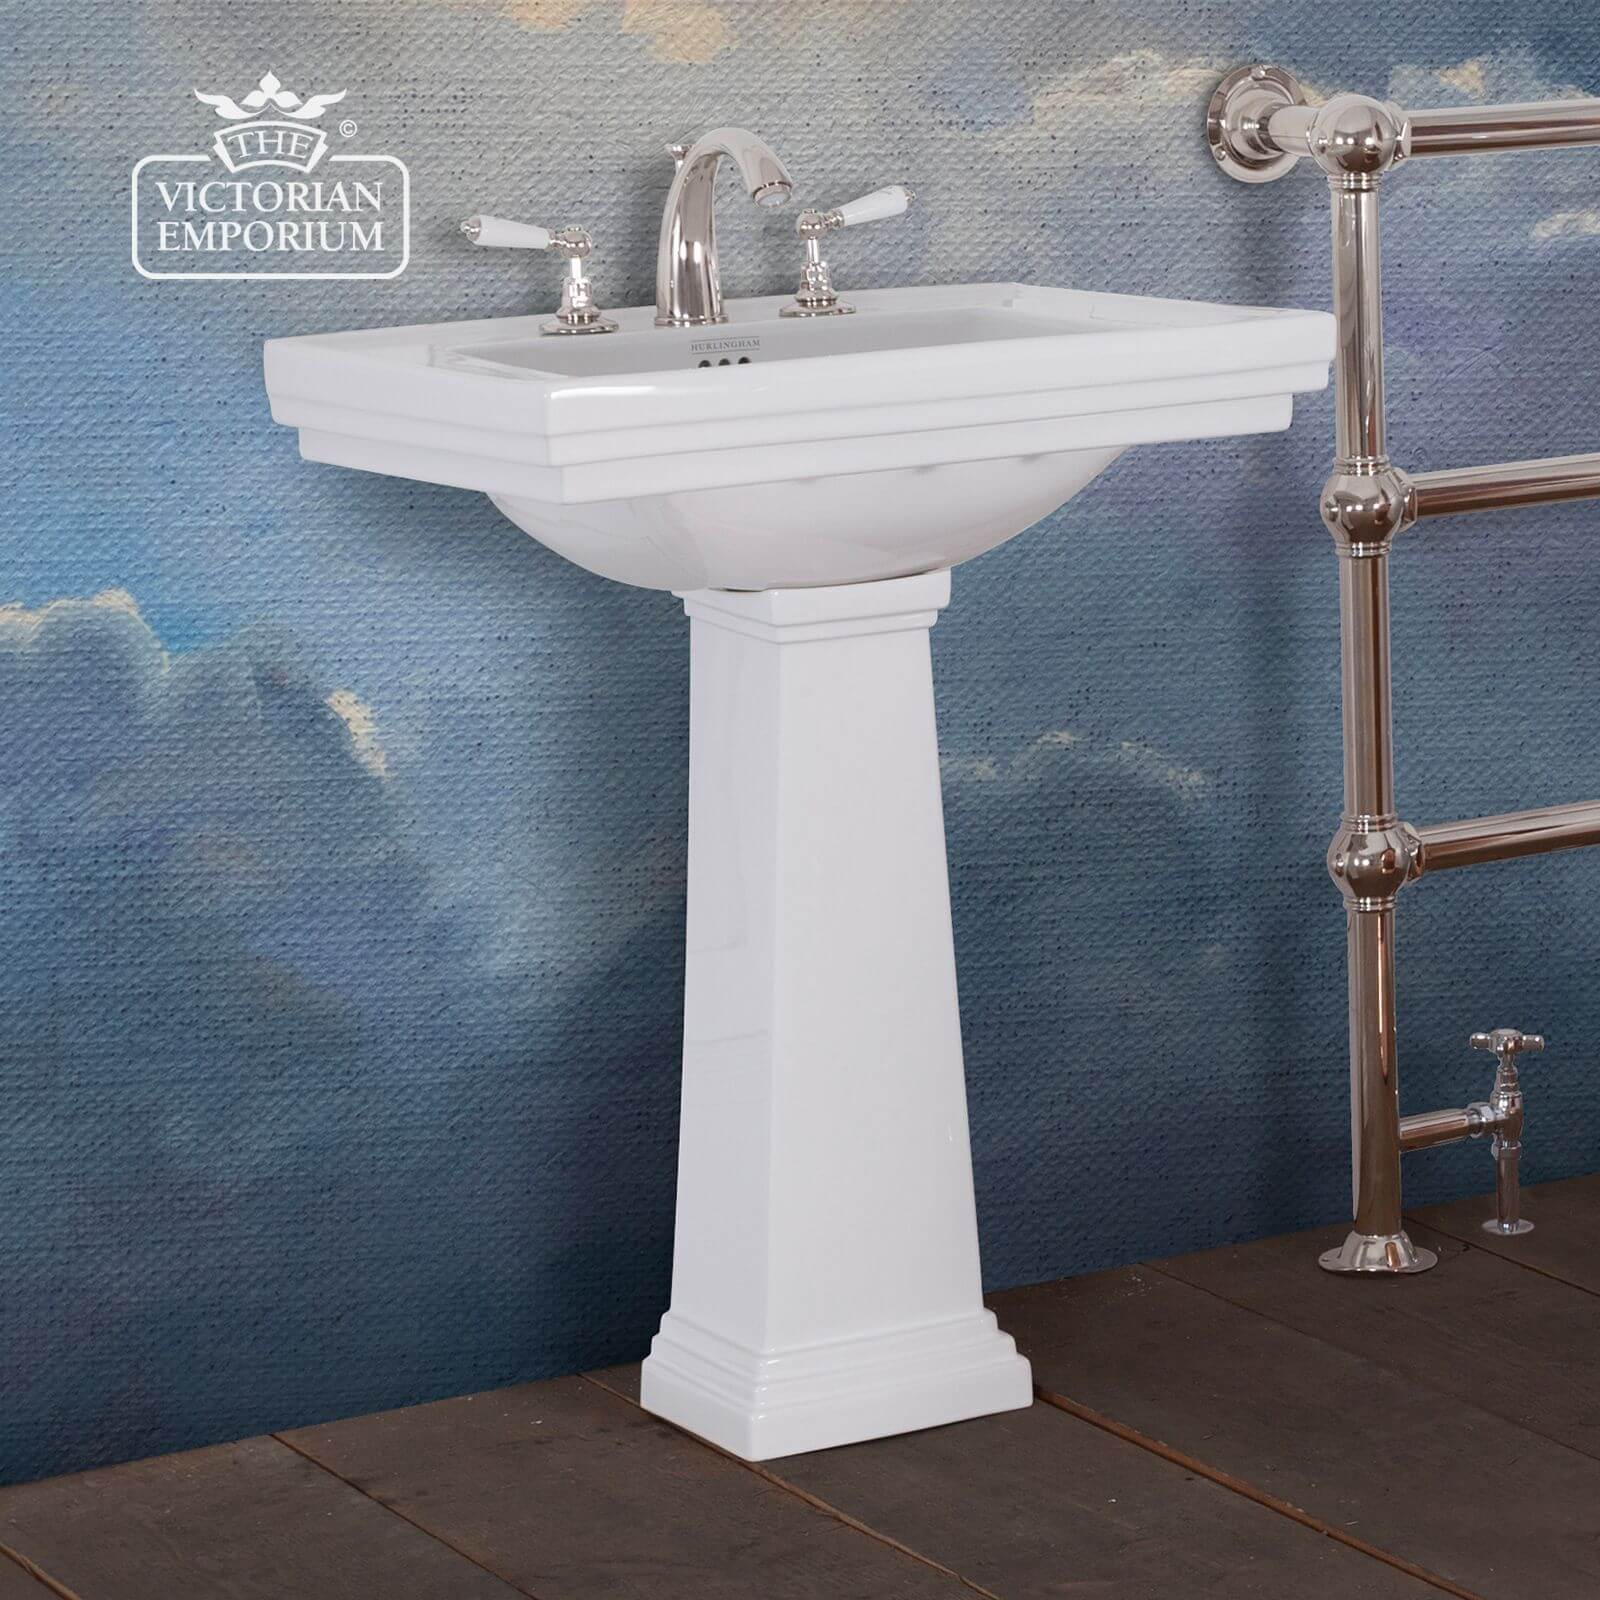 Highgate Pedestal Basin For Victorian Bathrooms Small Or Large Size